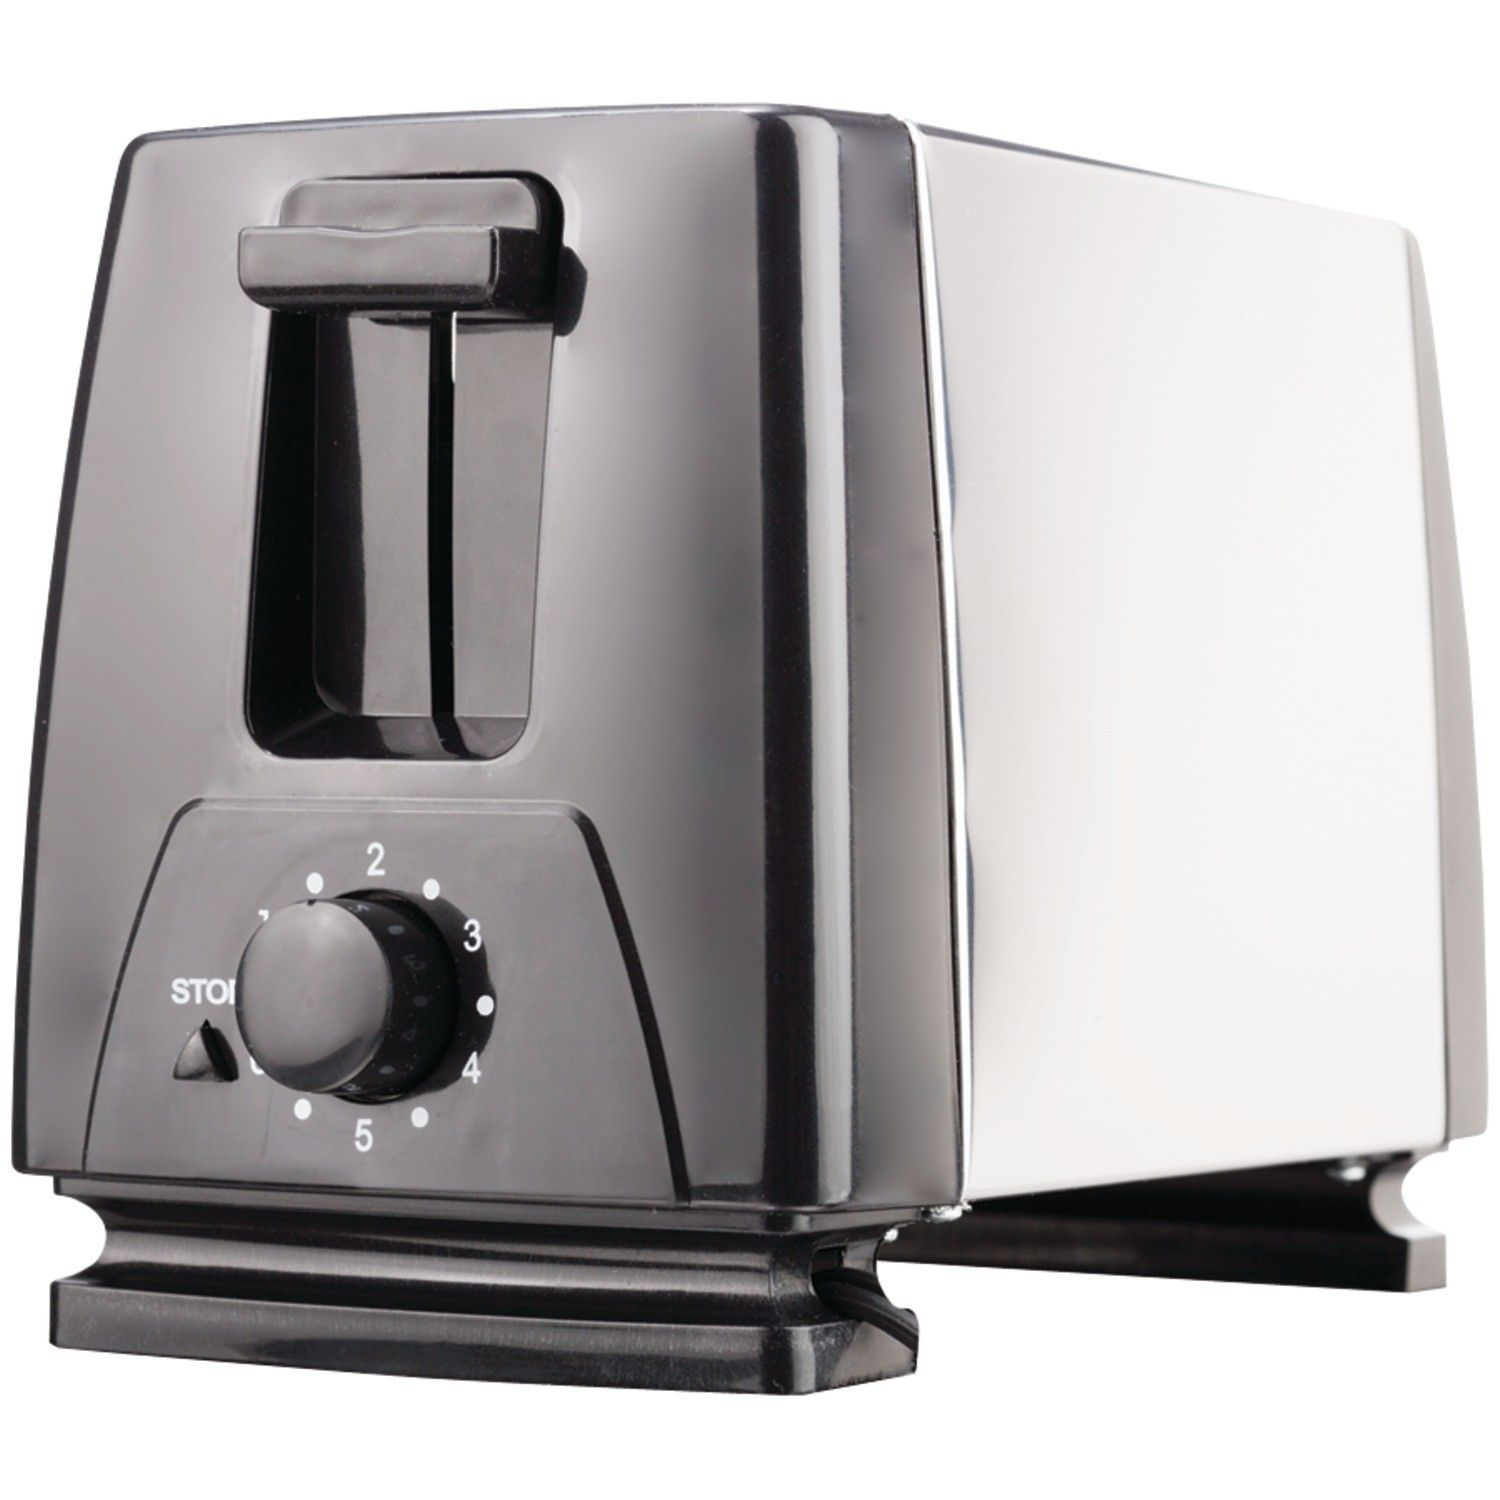 Brentwood 2 Slice Toaster Toaster Long Slot Toaster Glass Toaster